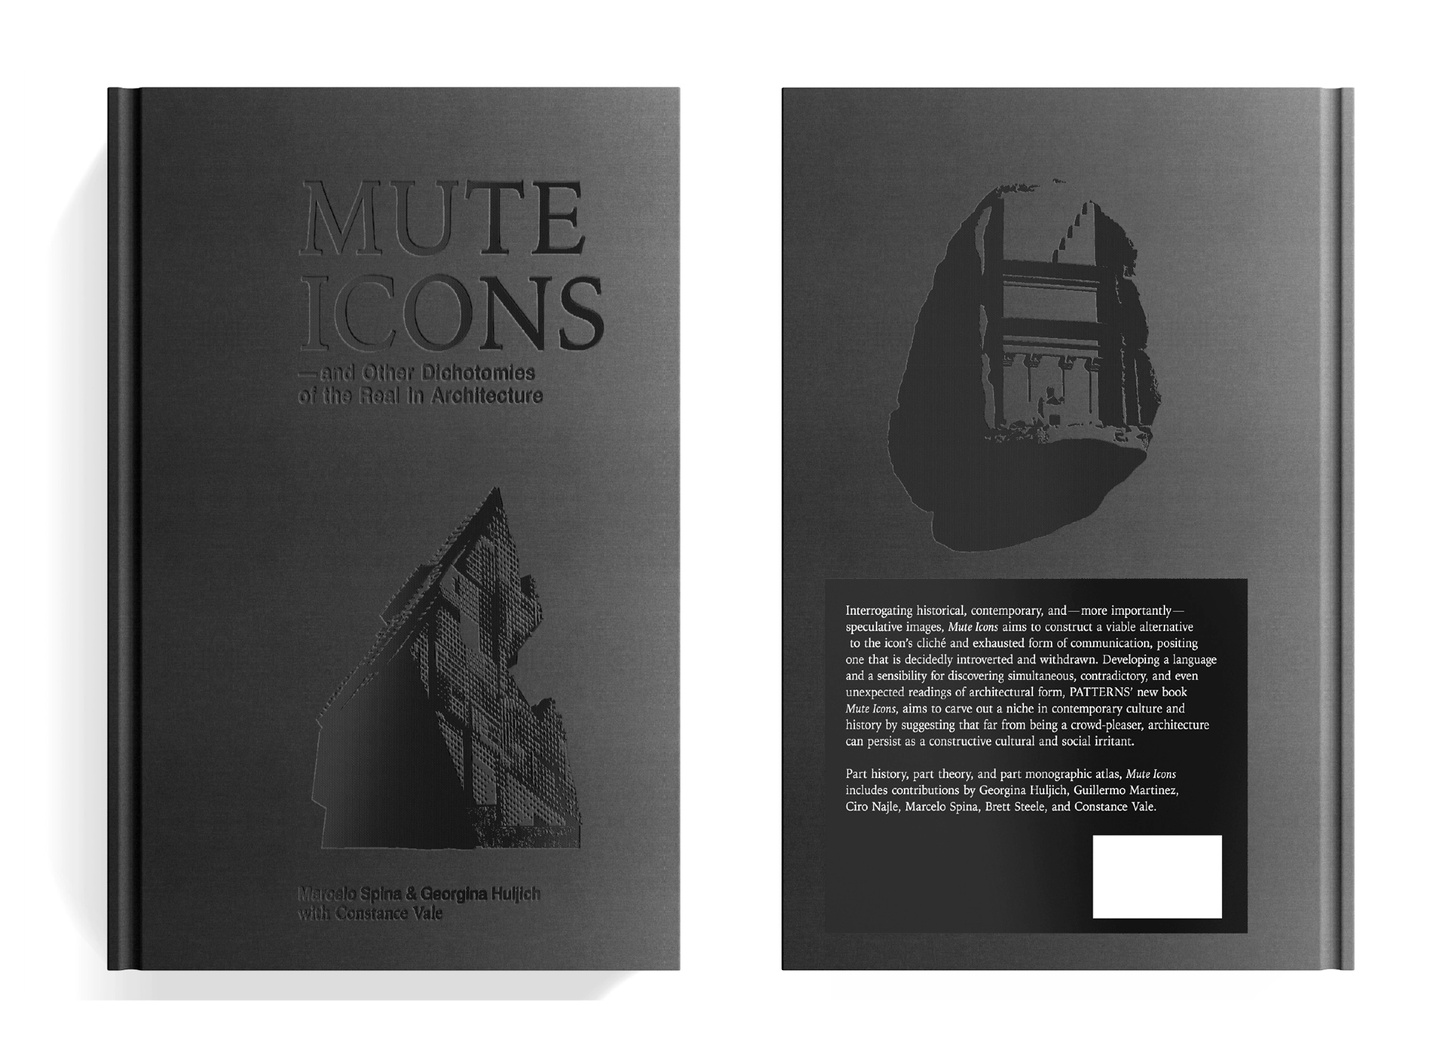 Two-panel image showing the front and back cover of Mute Icons, with a black embossed front cover.